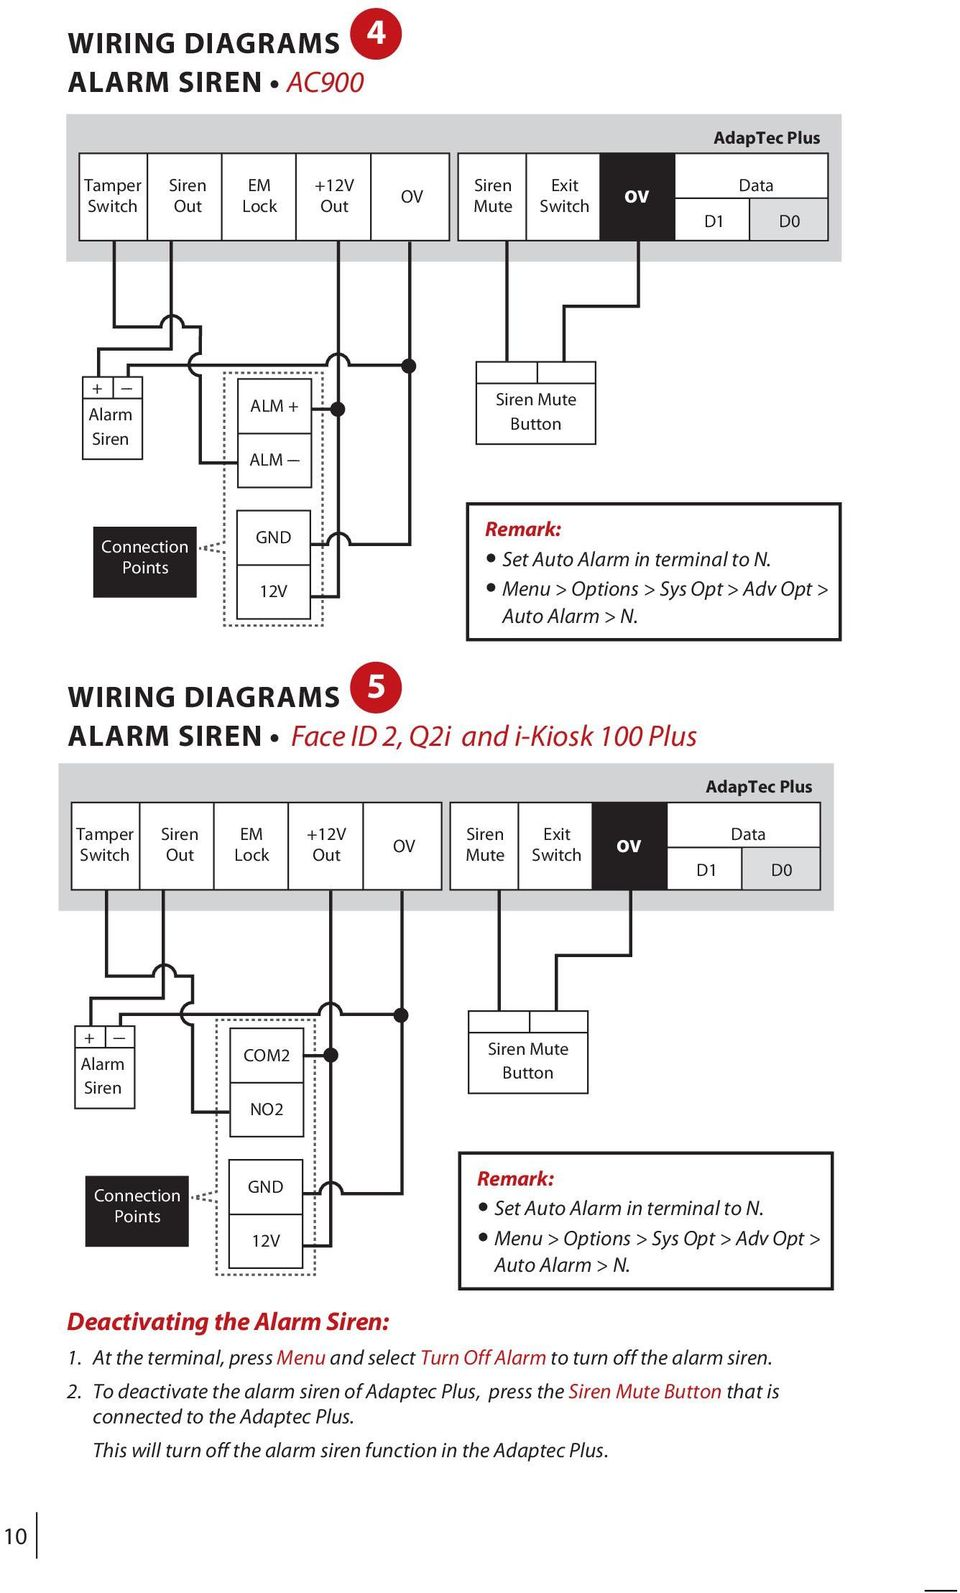 WIRING DIAGRAMS 5 ALARM SIREN Face ID, Qi and i-kiosk 100 Plus AdapTec Plus Tamper Siren EM +1V Siren Exit Data Switch Out Lock Out Mute Switch D1 D0 + --- Alarm Siren COM NO Siren Mute Button